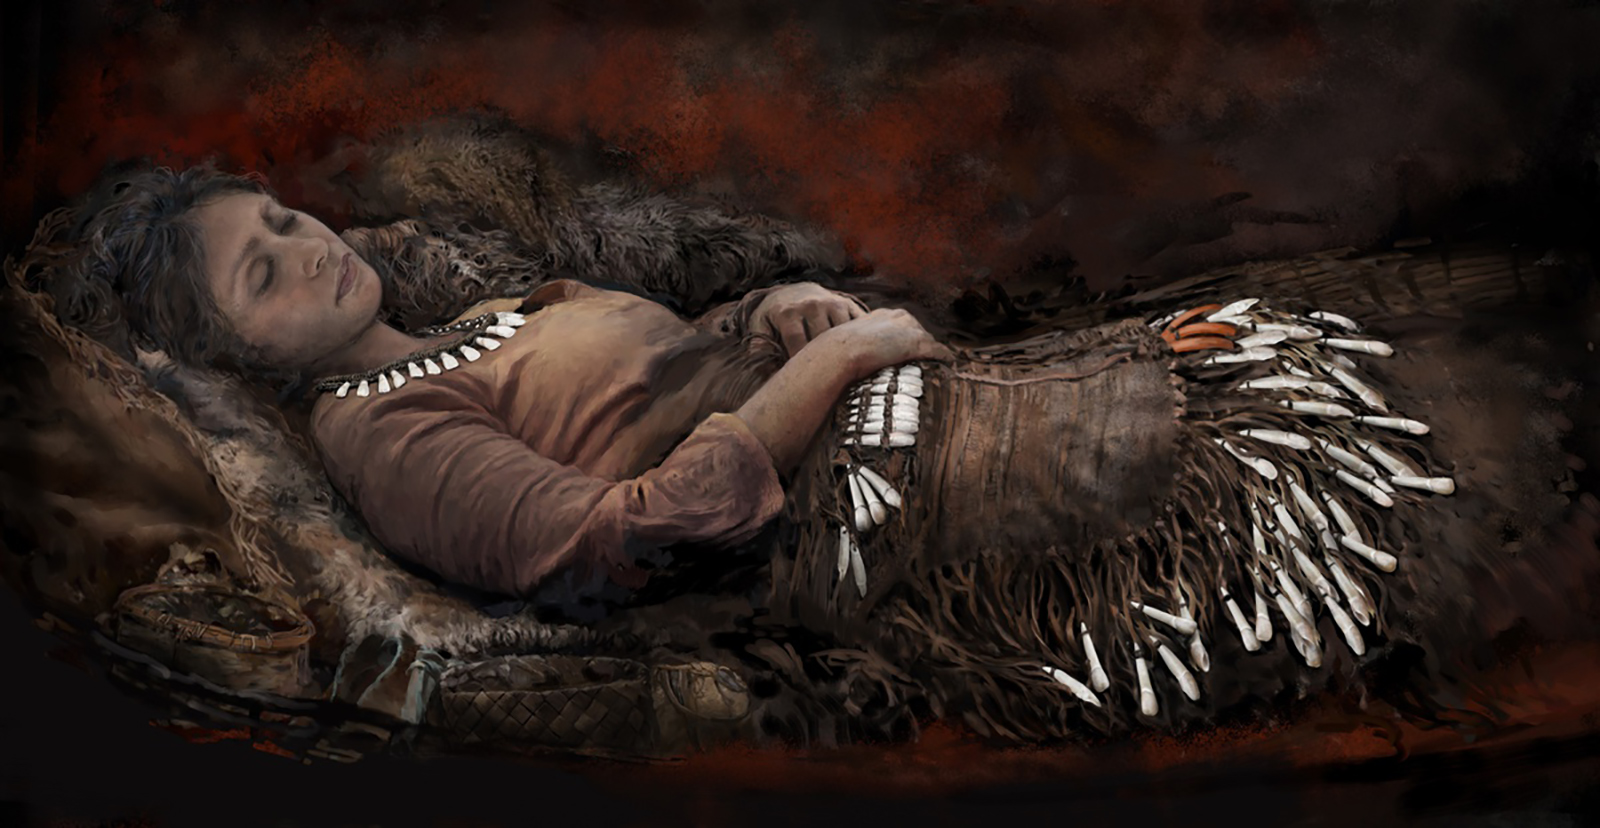 Burial ground reveals Stone Age people wore clothing covered in elk teeth